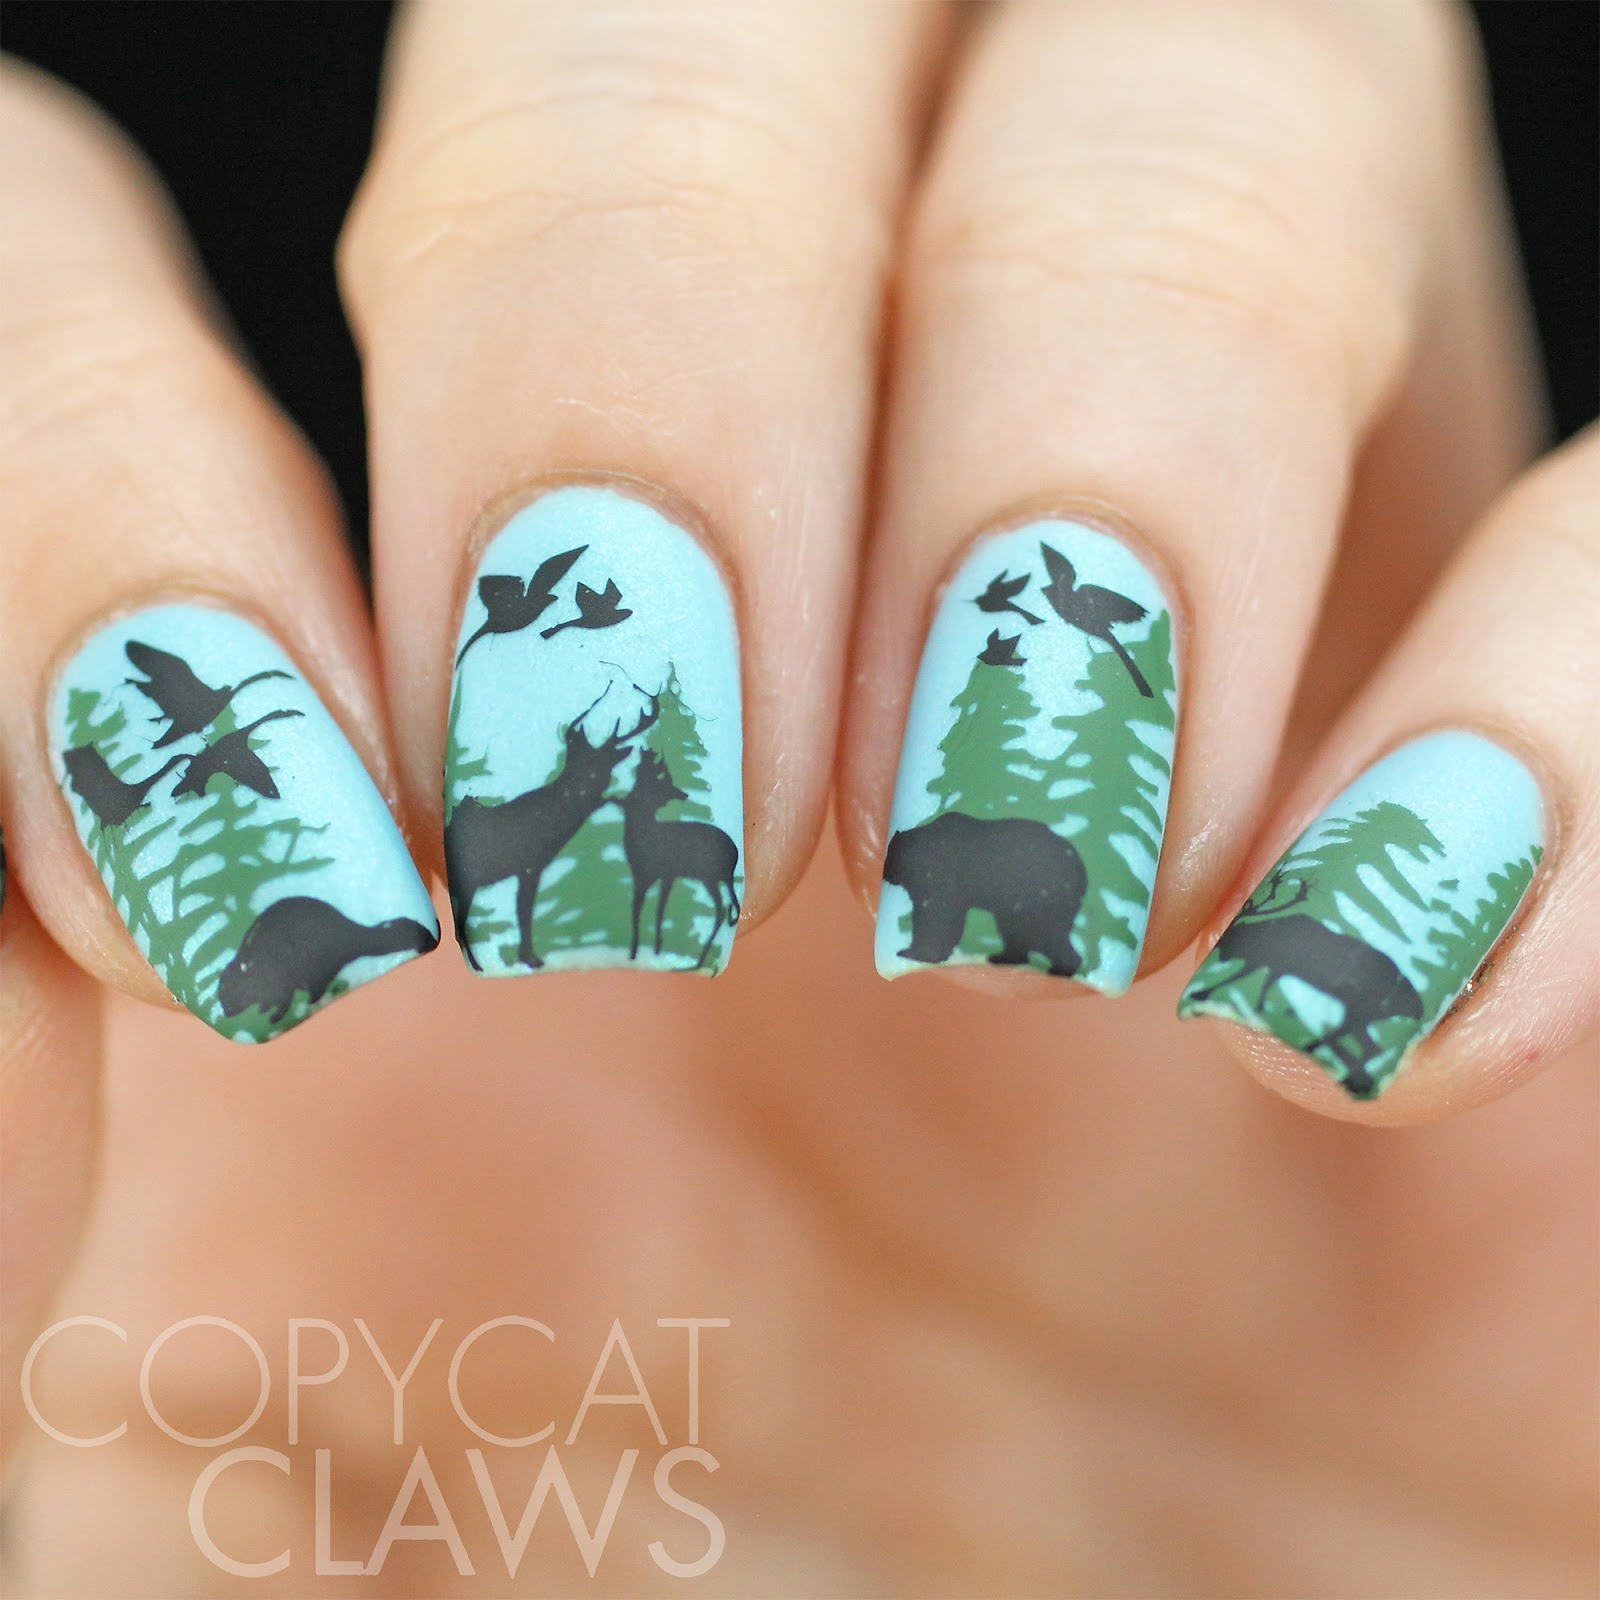 Copycat claws 40 great nail art ideas animals ive put on my nails either at the lake or on the way to the lake usually right in front of my caryikes keep reading to see all the details prinsesfo Choice Image